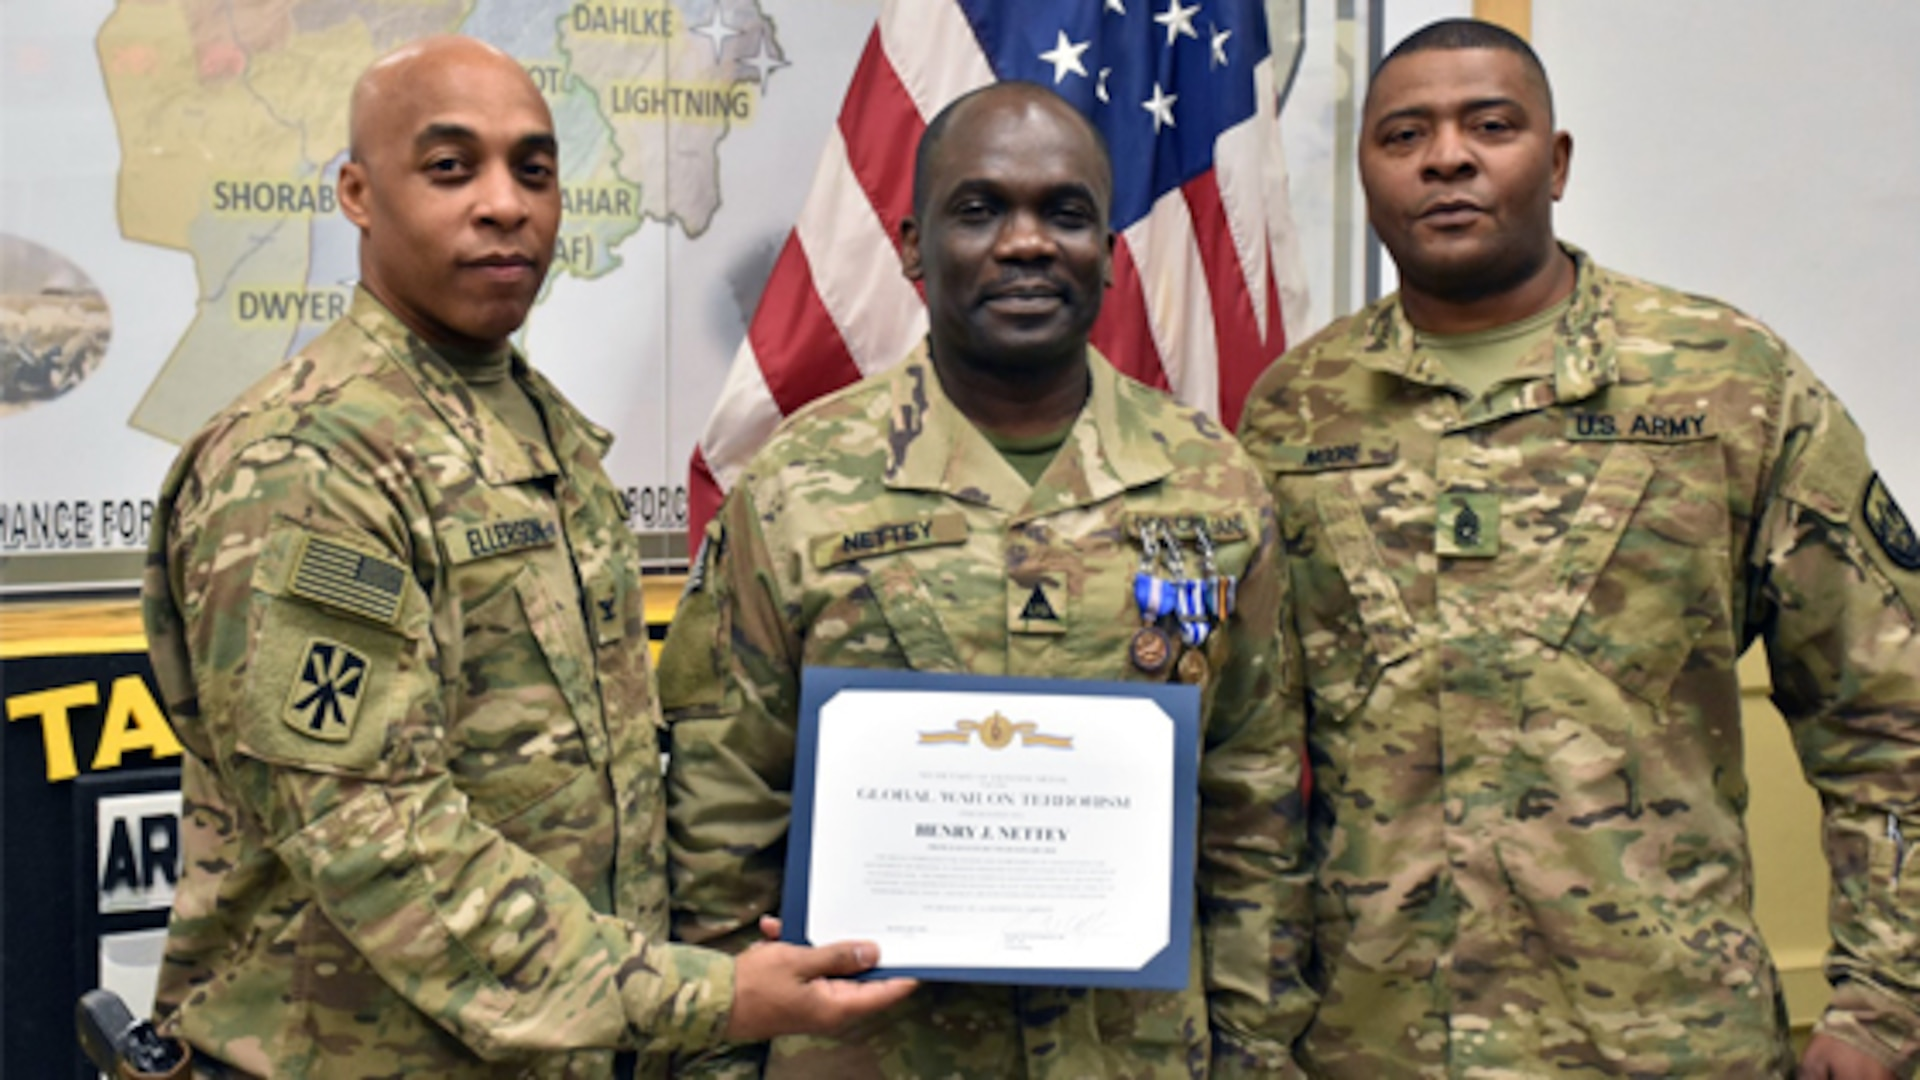 Army Col. James Ellerson, commander for the Area Support Group Afghanistan, and Army Command Sergeant Major Lloyd Moore, present Henry Nettey with the Global War on Terrorism medal and certificate, along with other accolades for his recent deployment. Nettey is currently a contract administrator at Defense Contract Management Agency Hampton in Virginia. (Photo courtesy of Don Baumgartner)